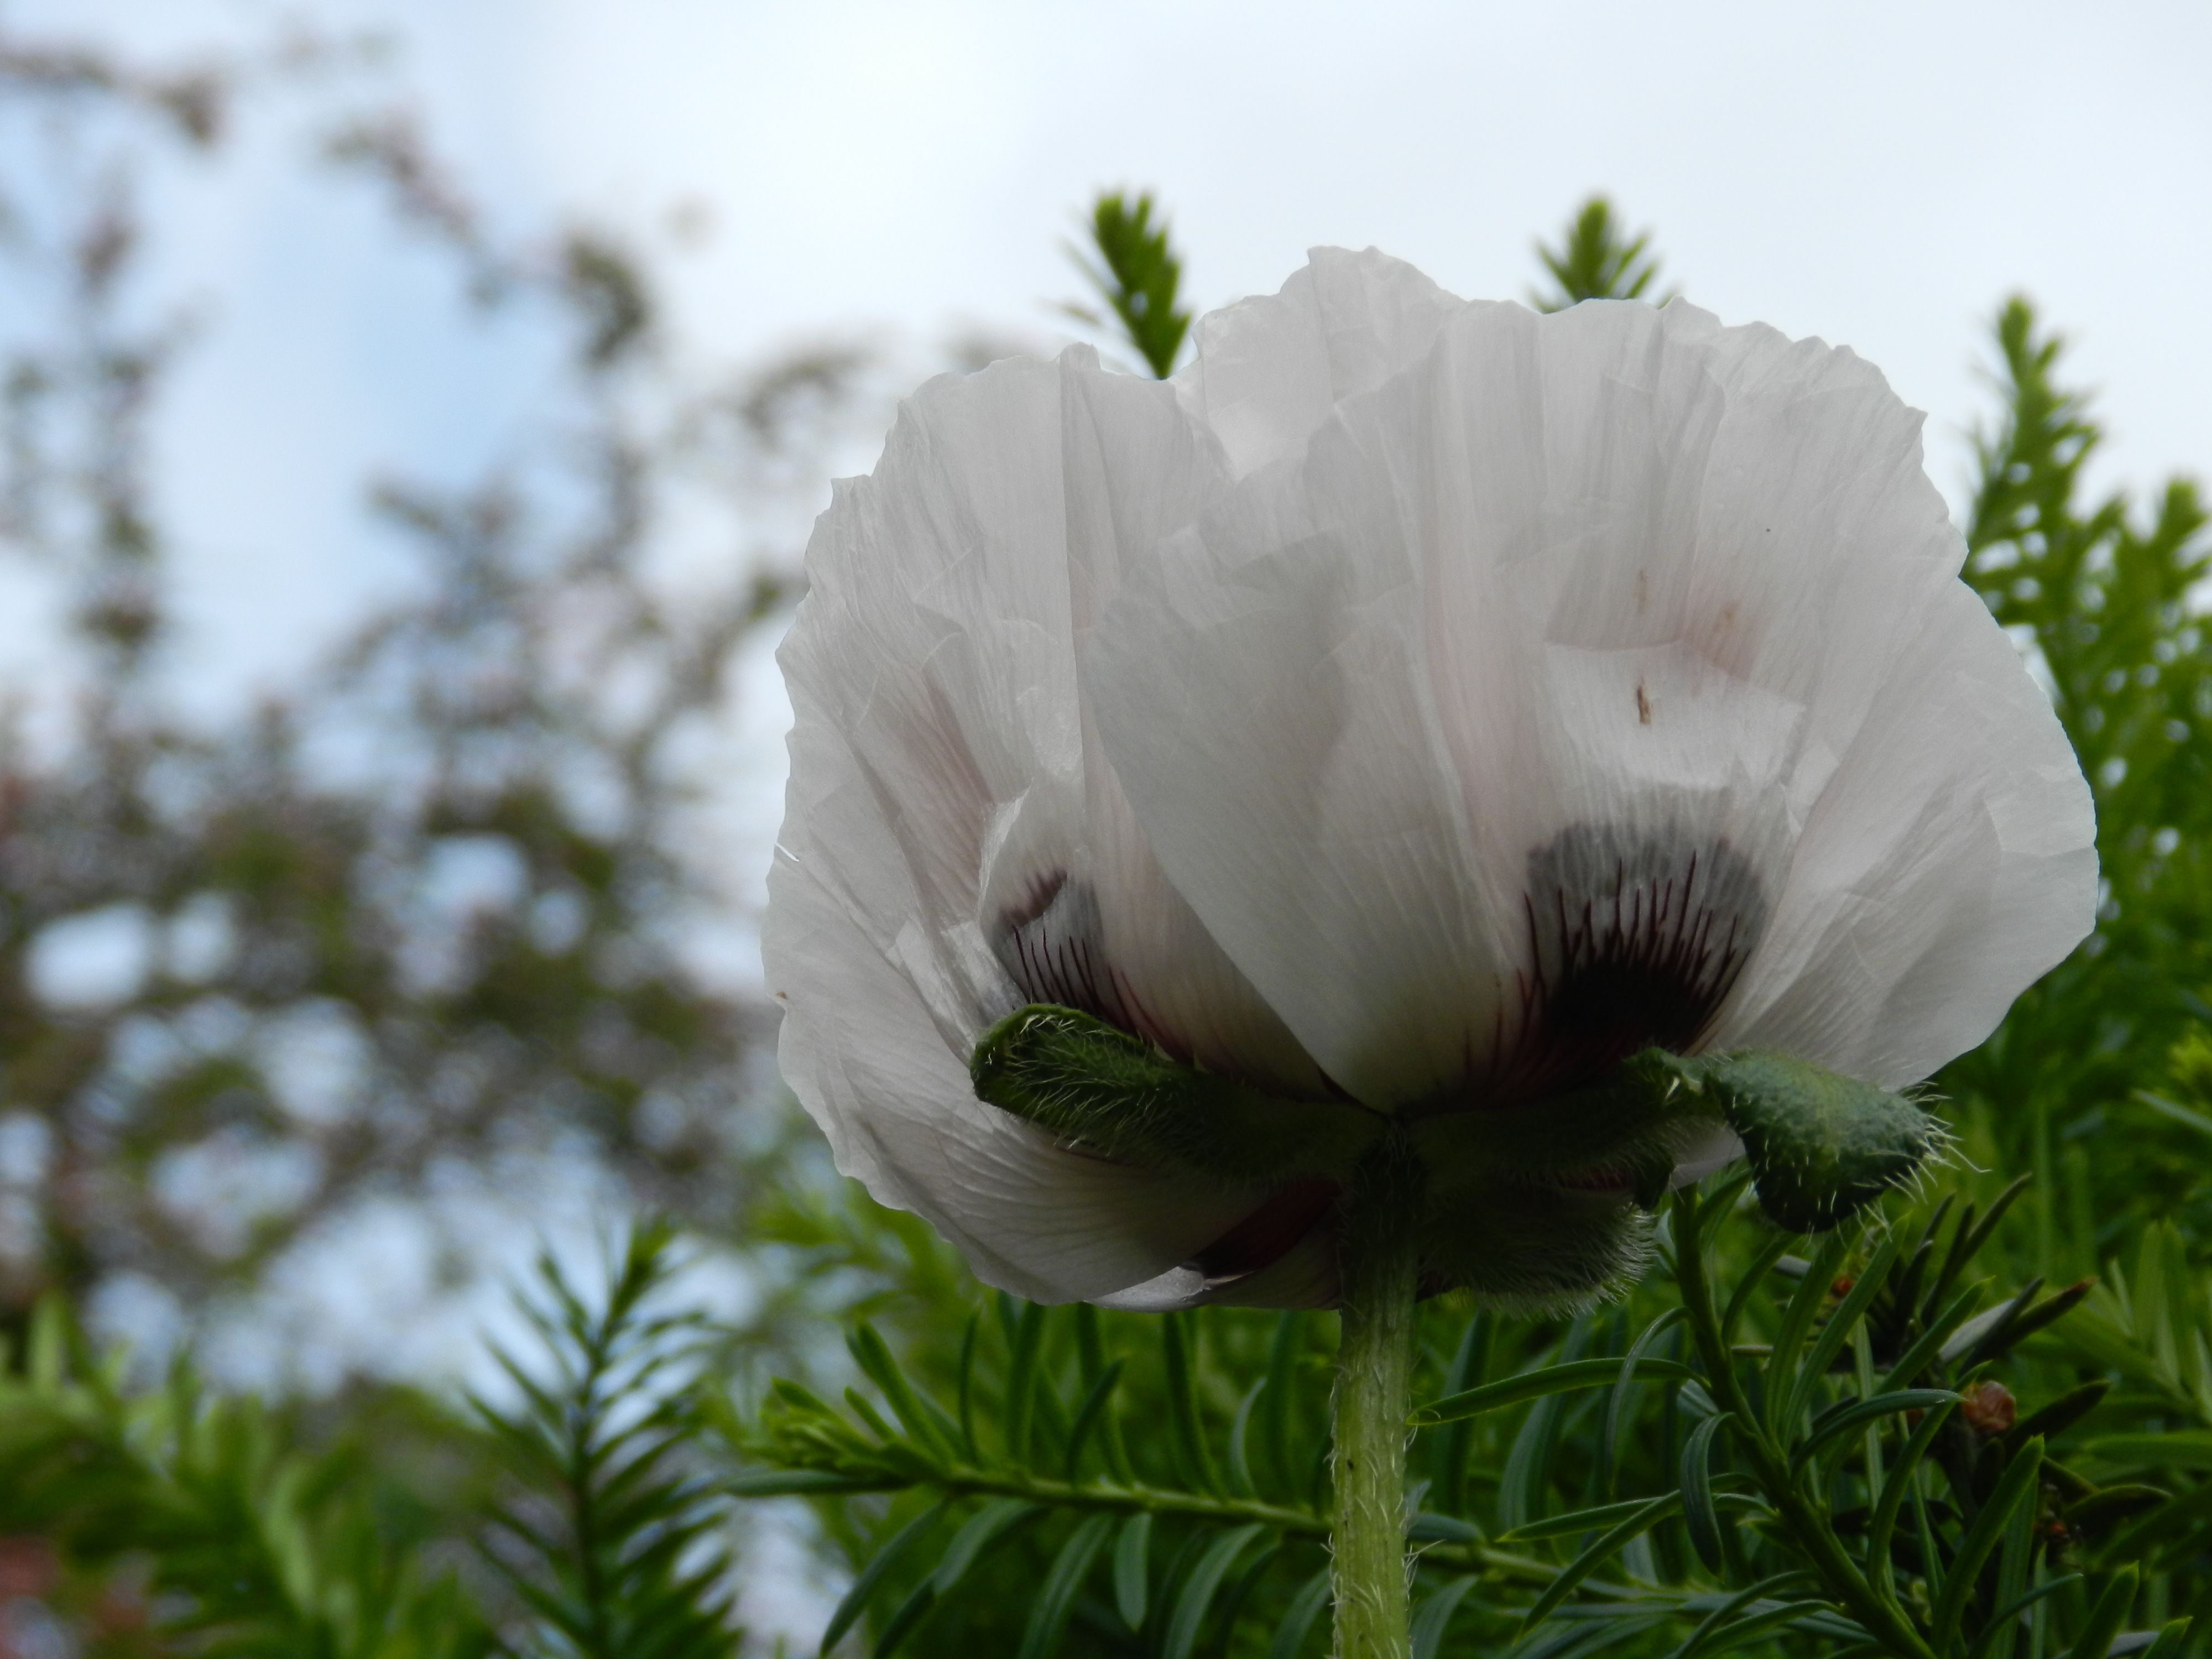 Poppy. If you listen carefully you can hear the frail petals unfold!